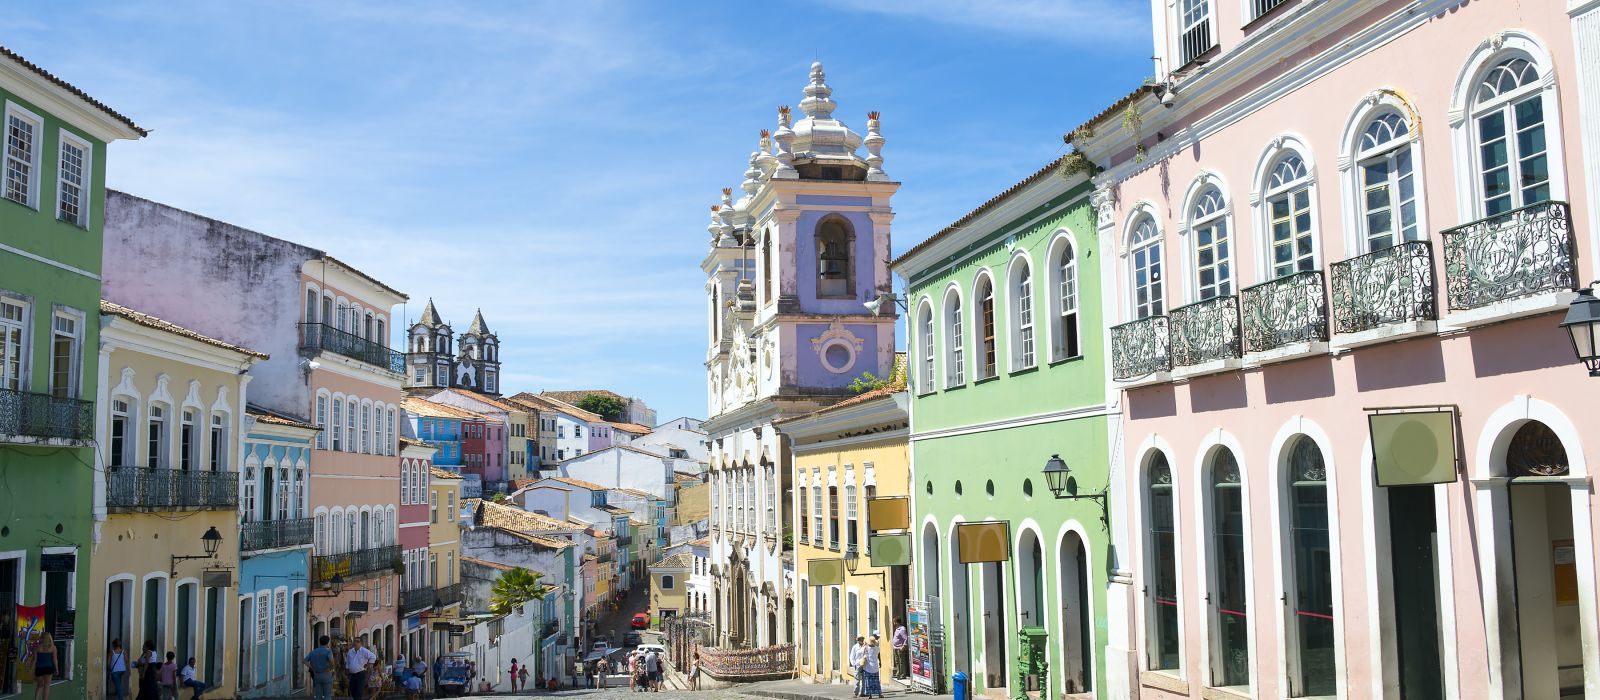 Historic city center of Pelourinho features brightly lit skyline of colonial architecture on a broad cobblestone hill in Salvador, Brazil, South America